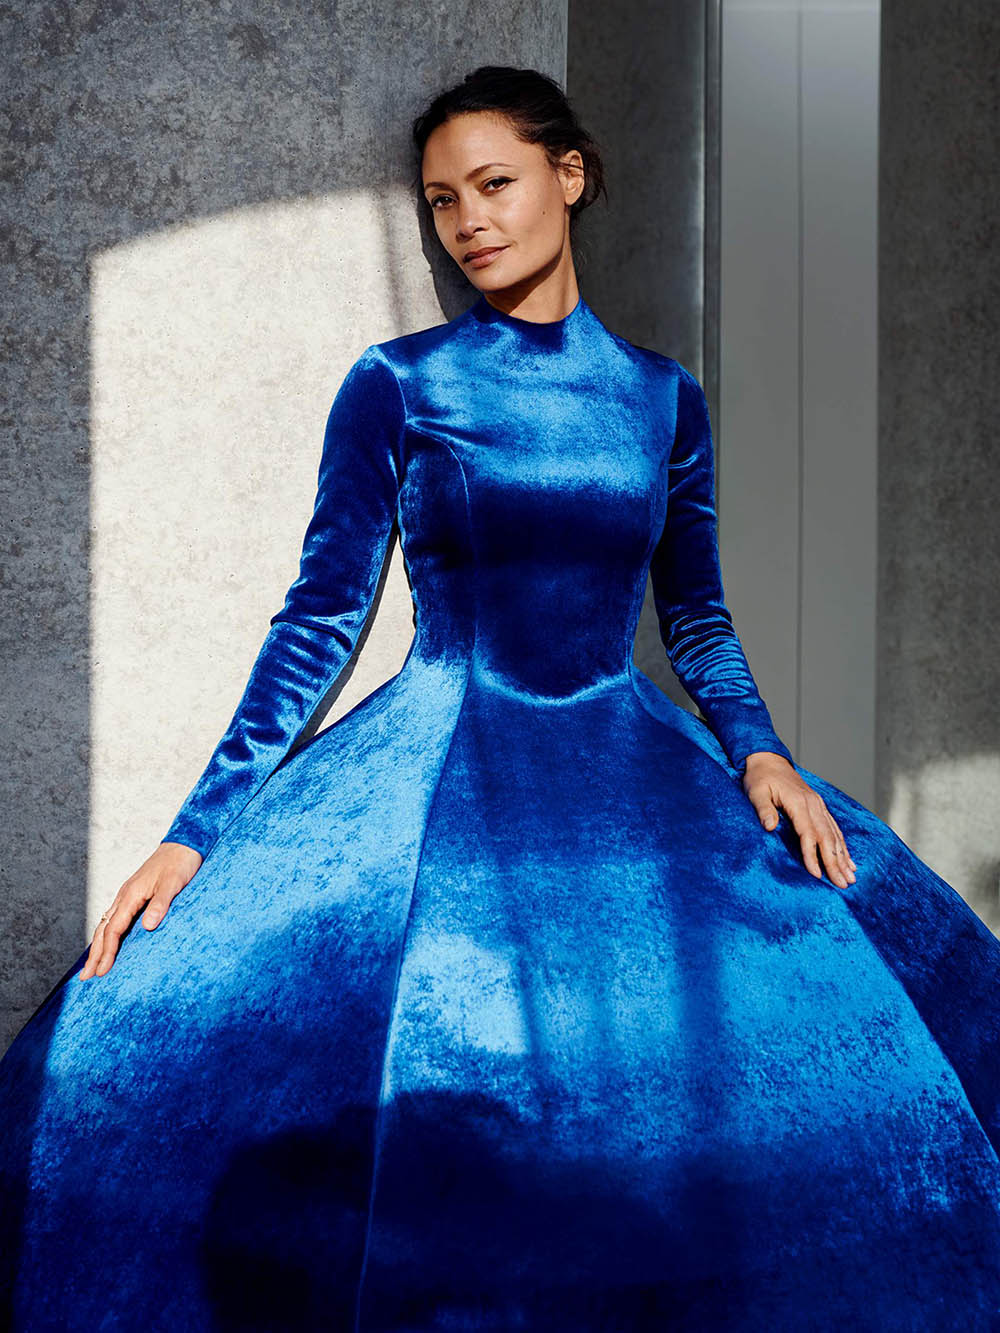 Thandie Newton covers Porter Magazine March 16th, 2020 by Liz Collins